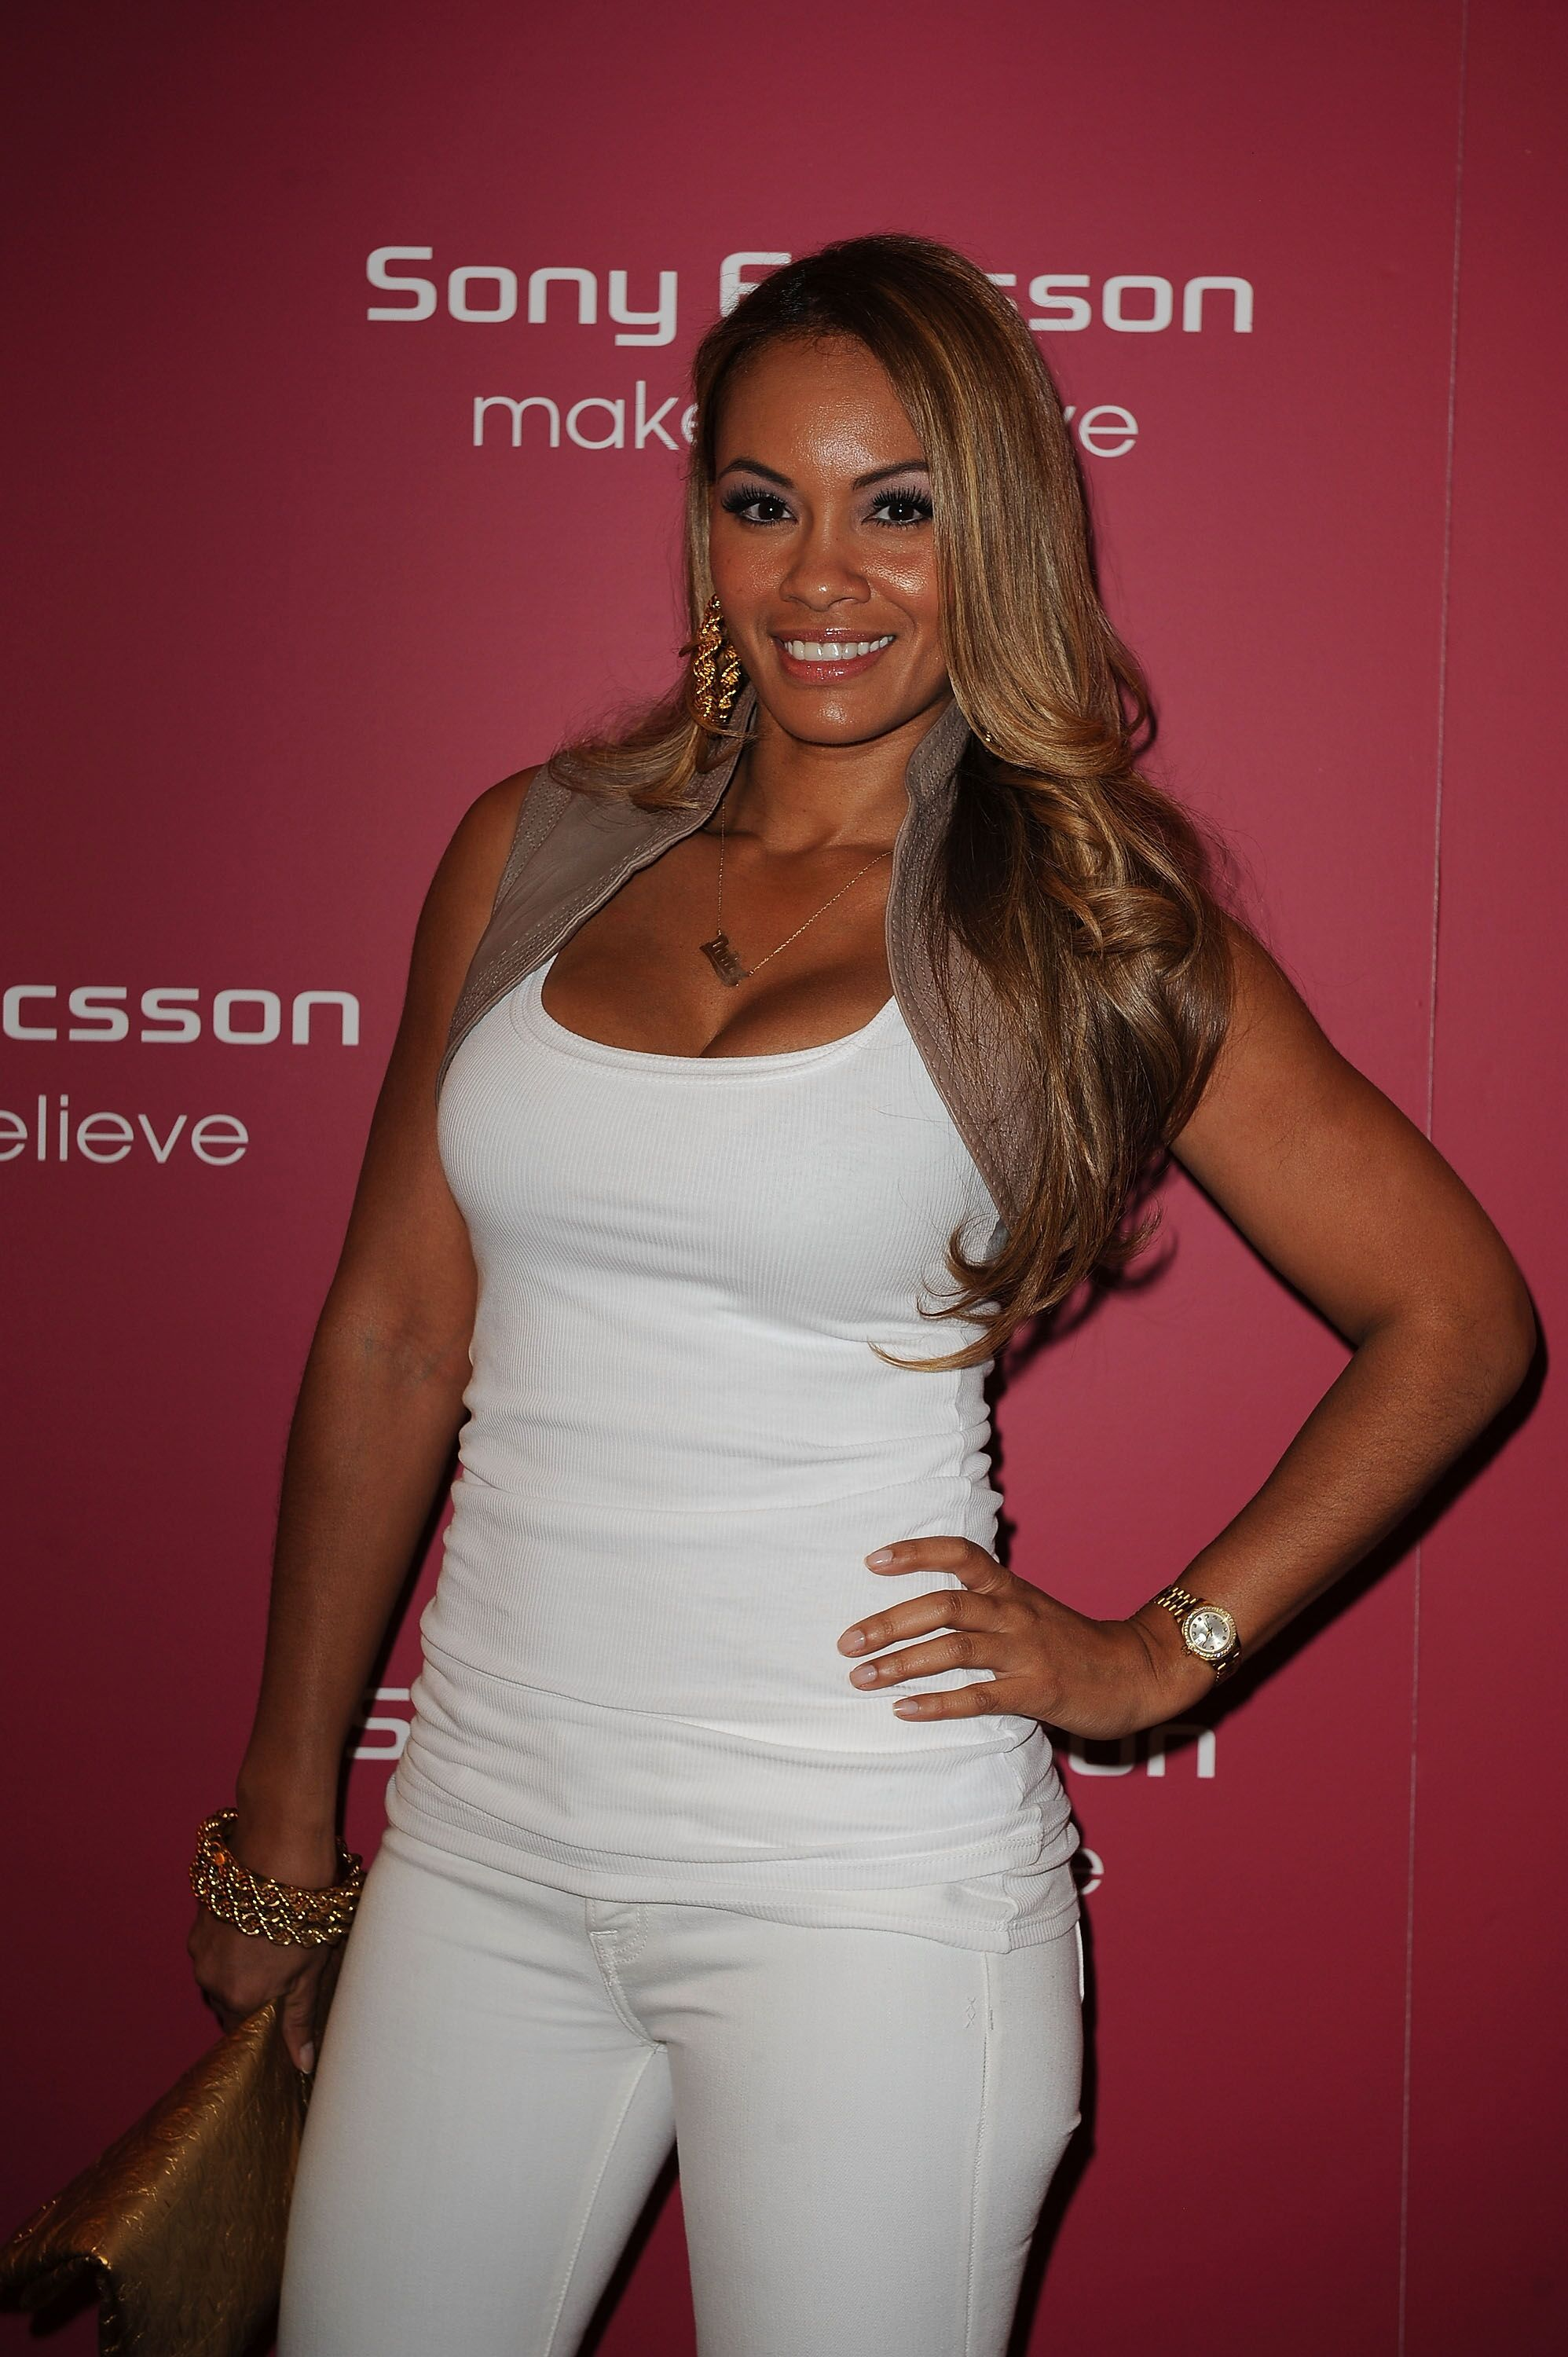 Evelyn Lozada at a Sony Ericsson event | Source: Getty Images/GlobalImagesUkraine